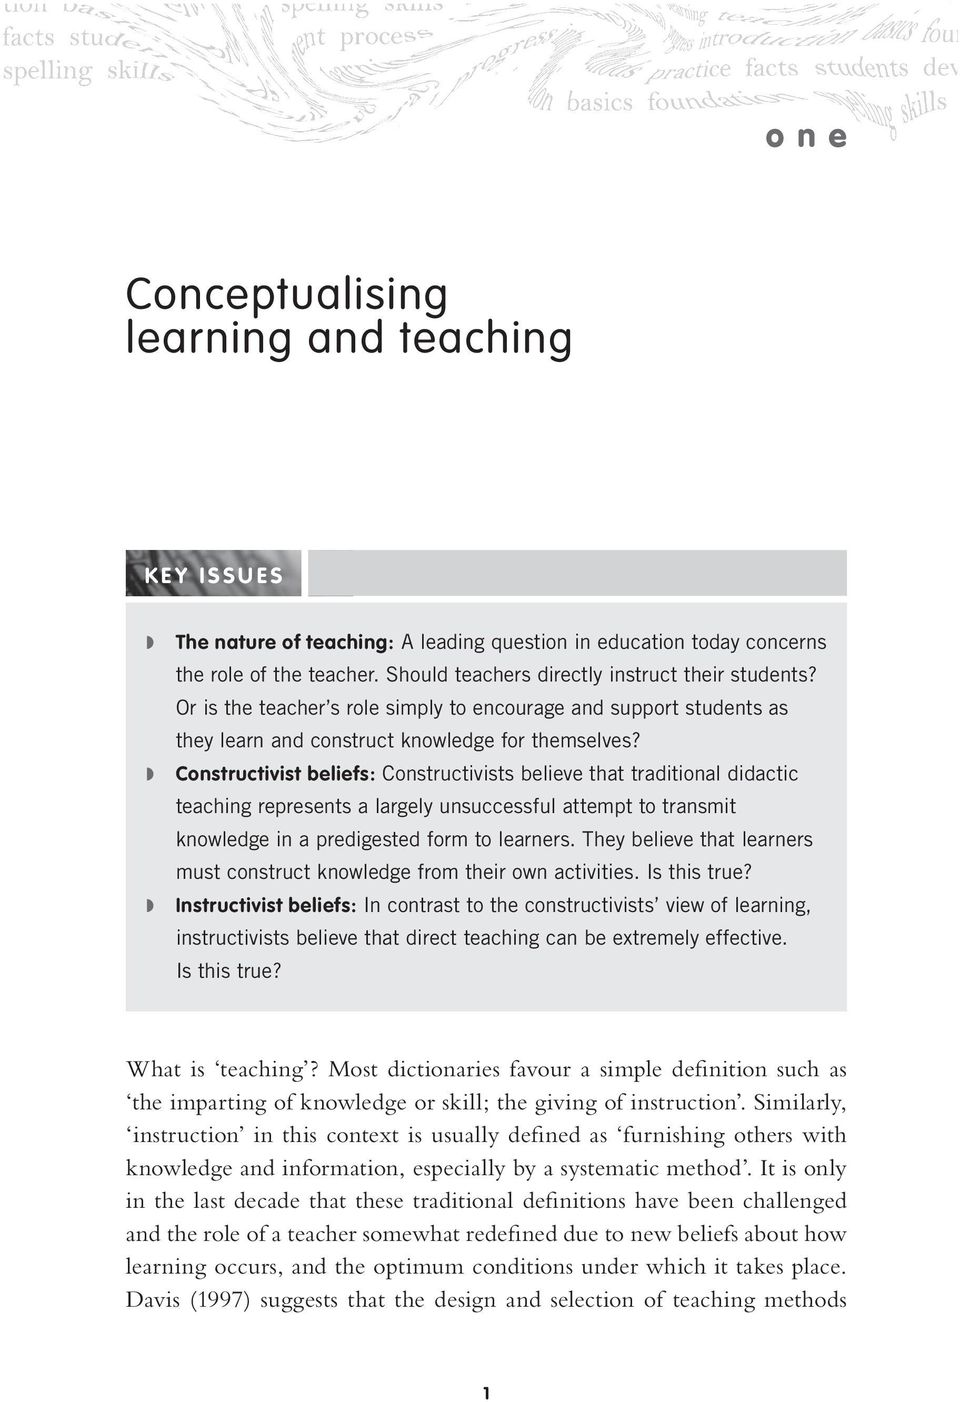 Constructivist beliefs: Constructivists believe that traditional didactic teaching represents a largely unsuccessful attempt to transmit knowledge in a predigested form to learners.